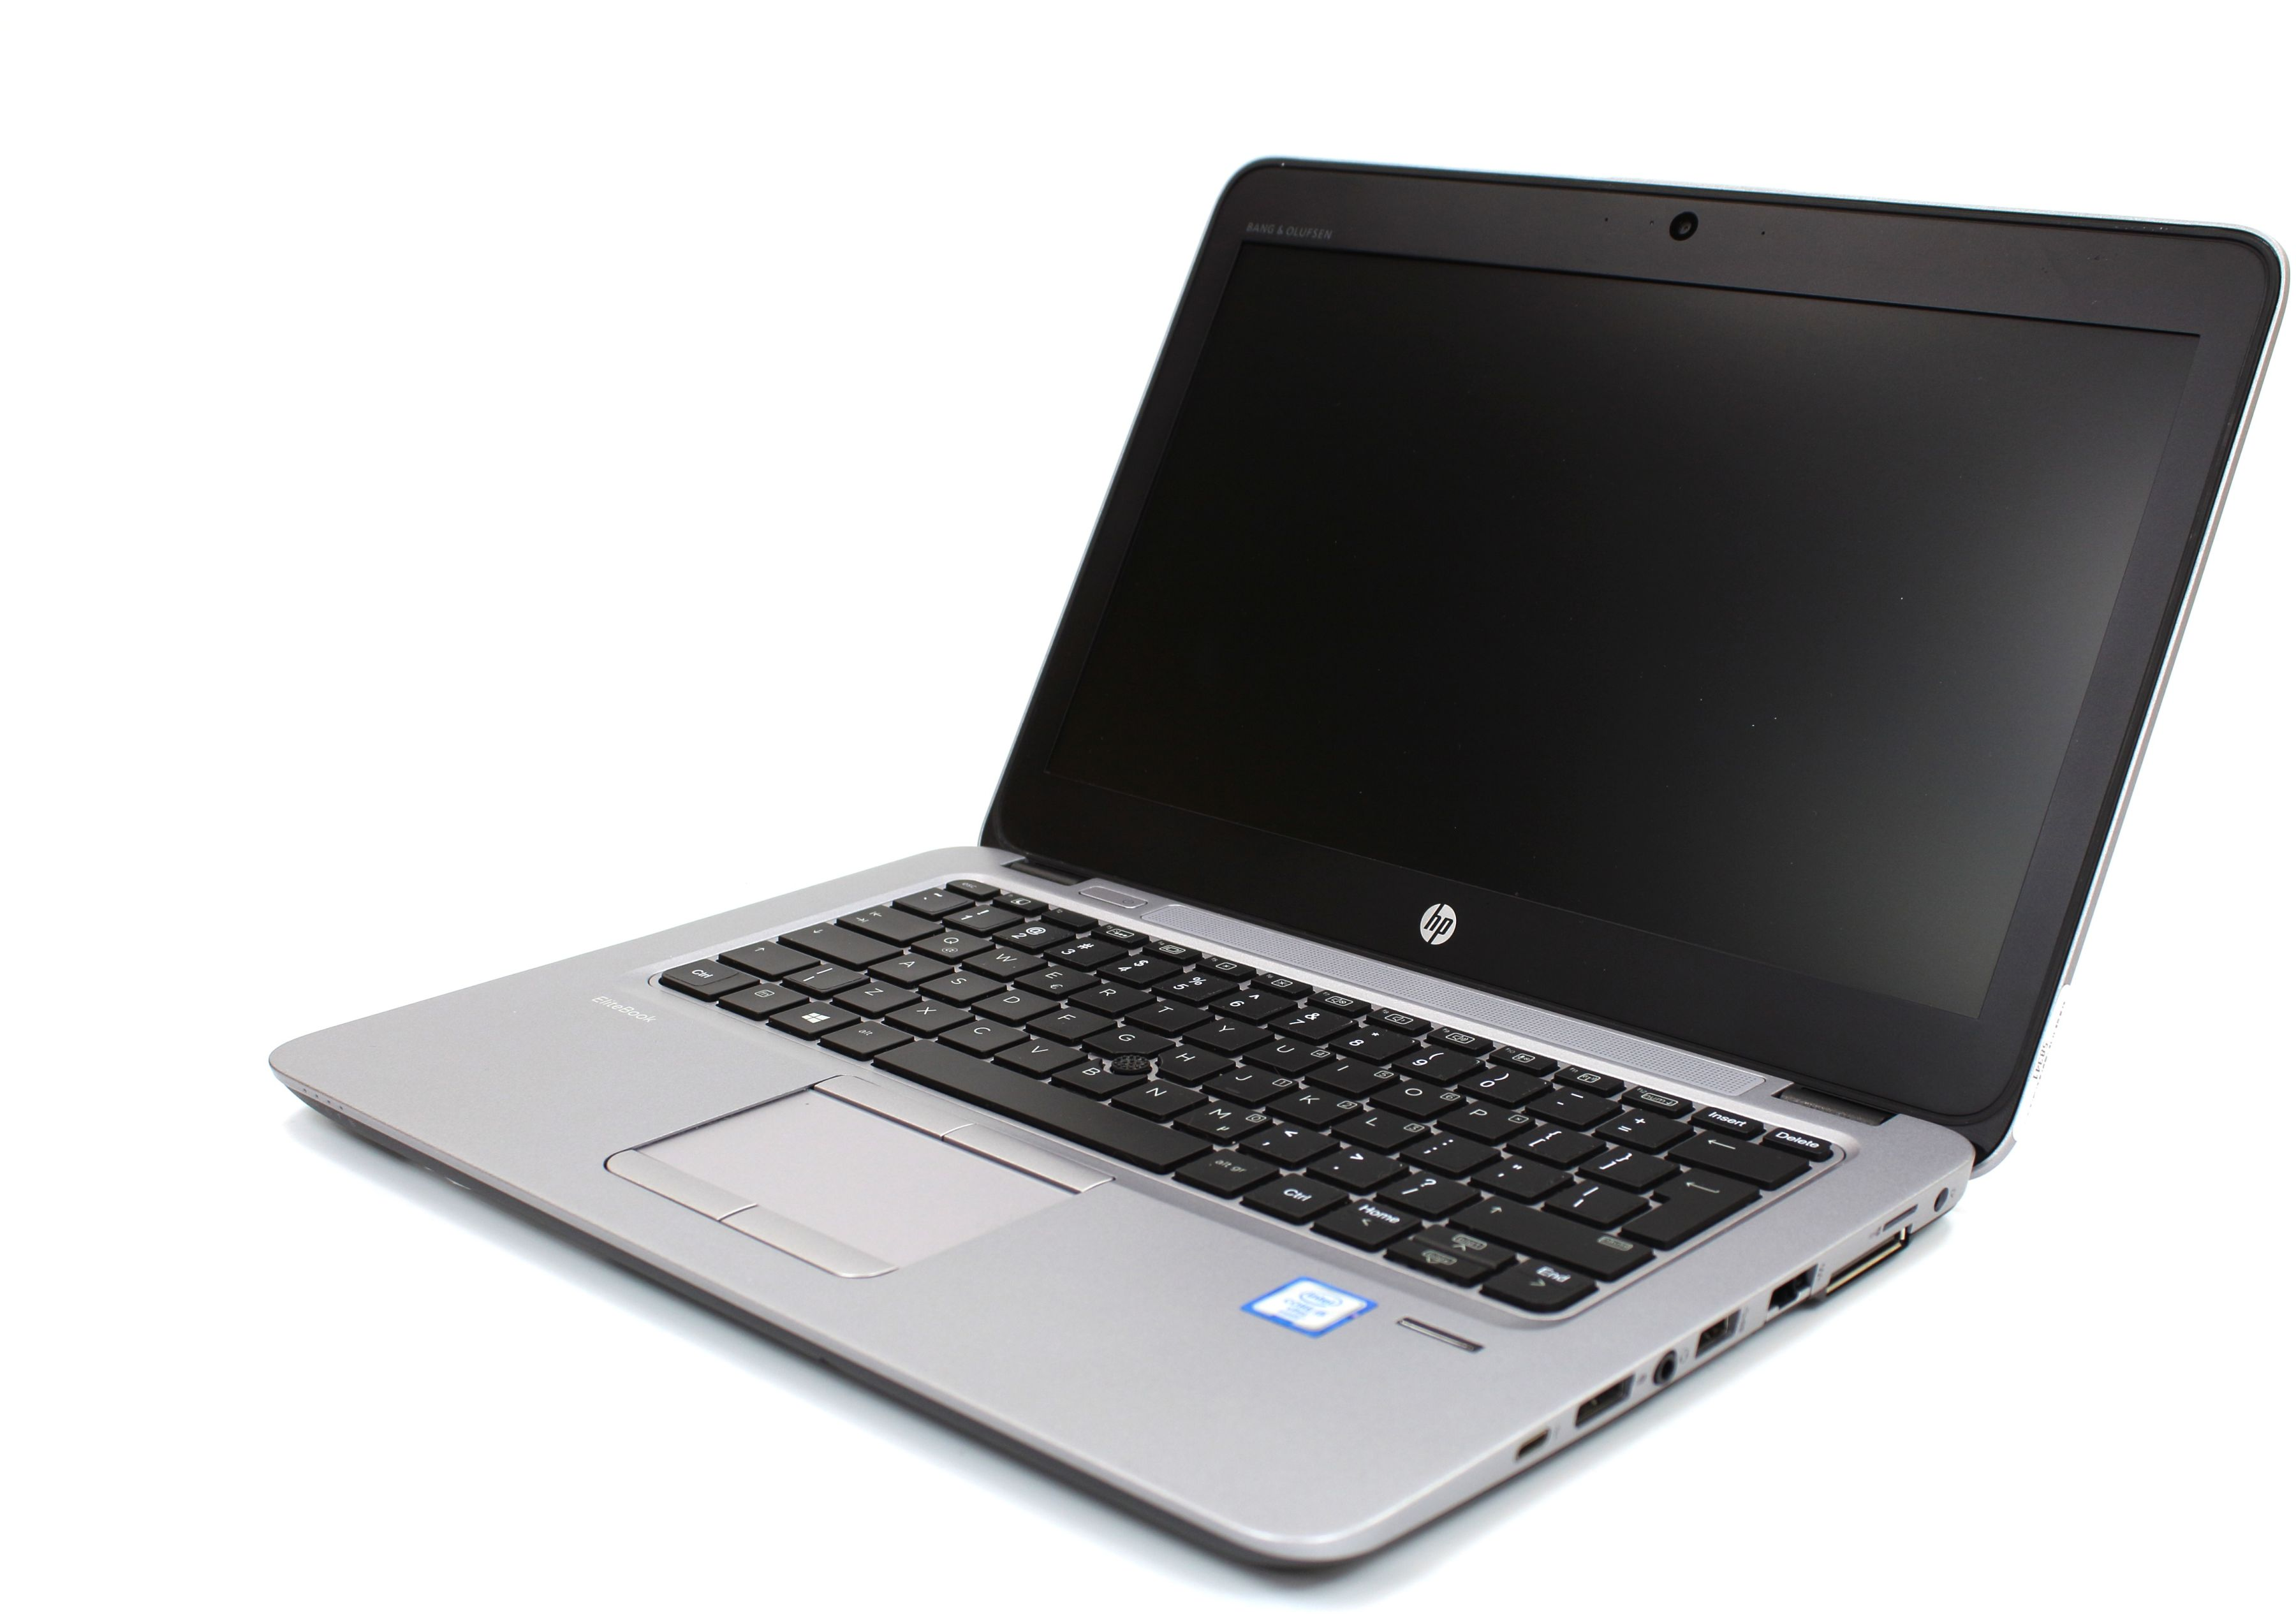 "Laptop HP EliteBook 820 G3 12.5"" HD i5-6300U 8GB 256GB SSD Kamera Windows 7/8/10 Pro"